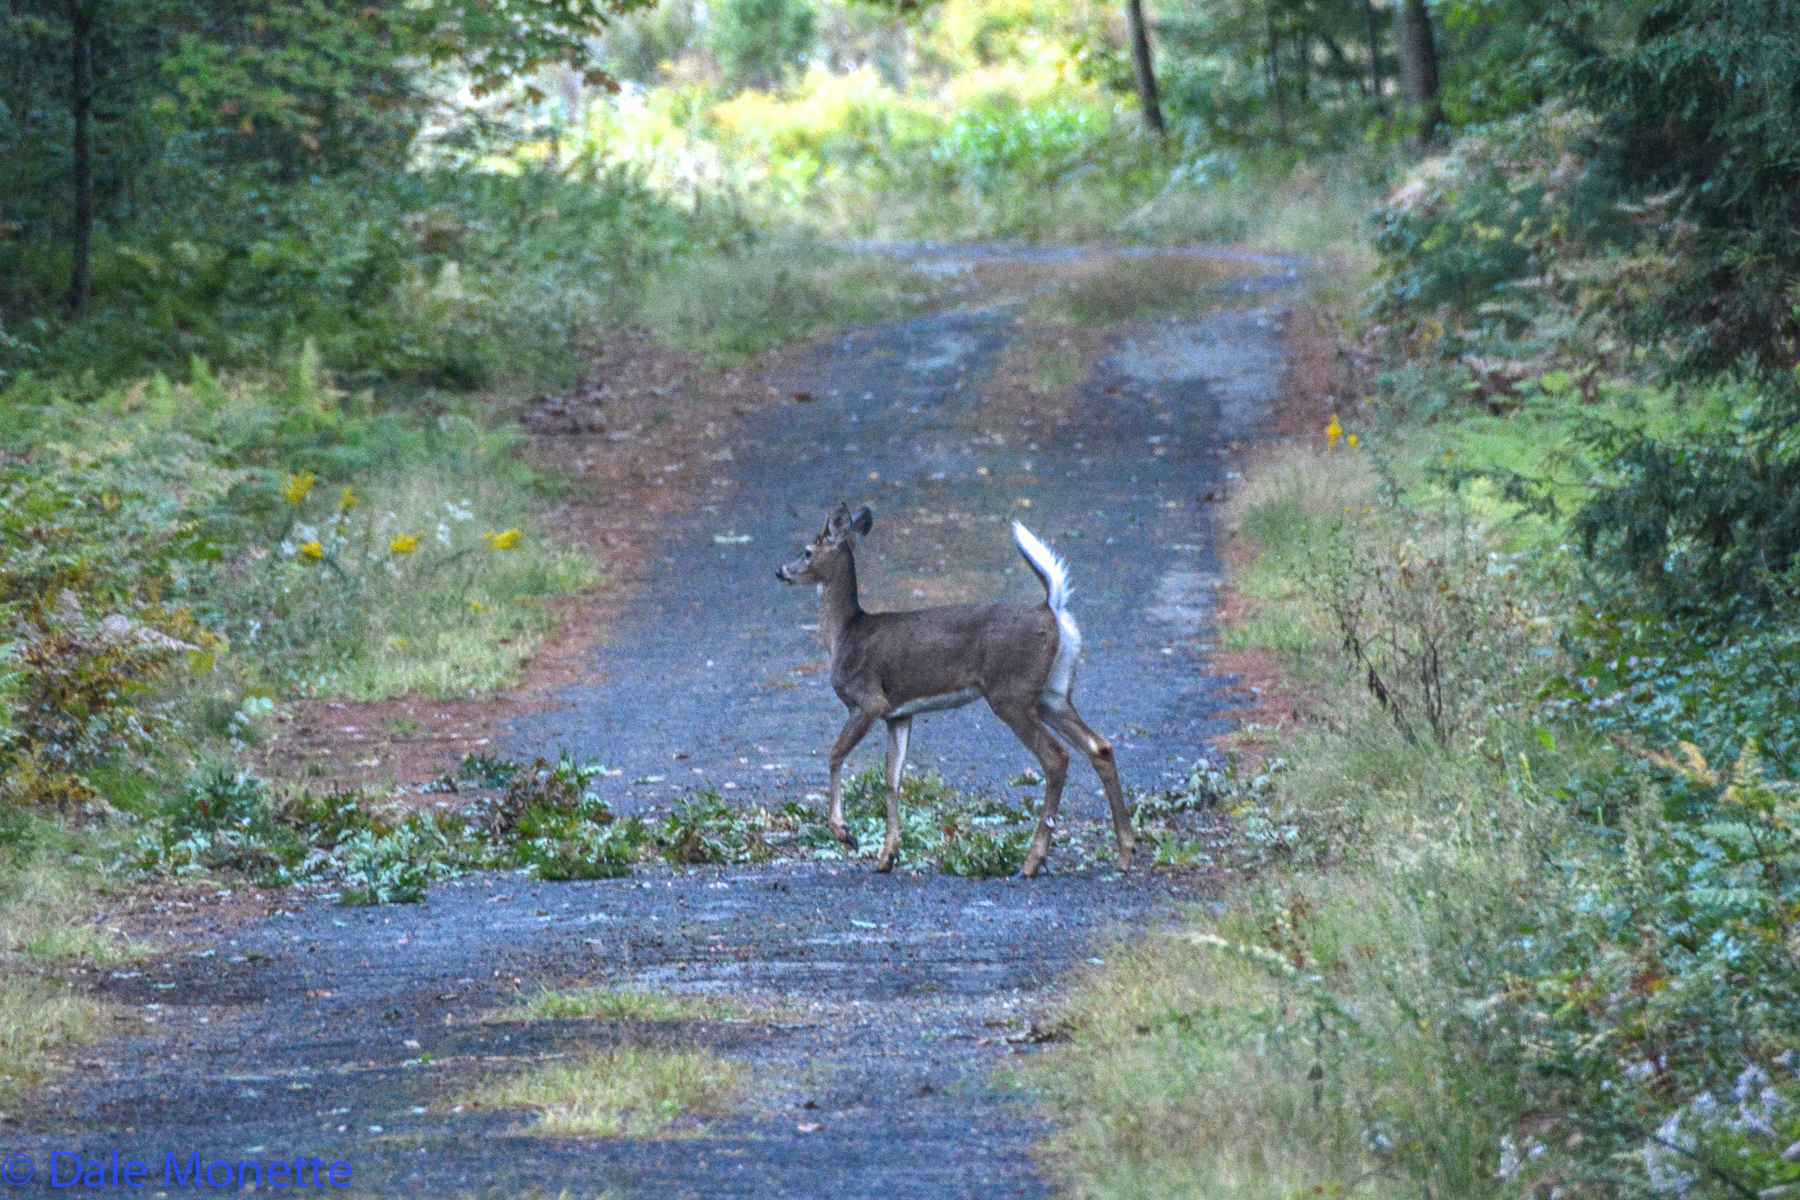 These twigs dropped in the road and made easy acorn eating for this young deer early in the morning.